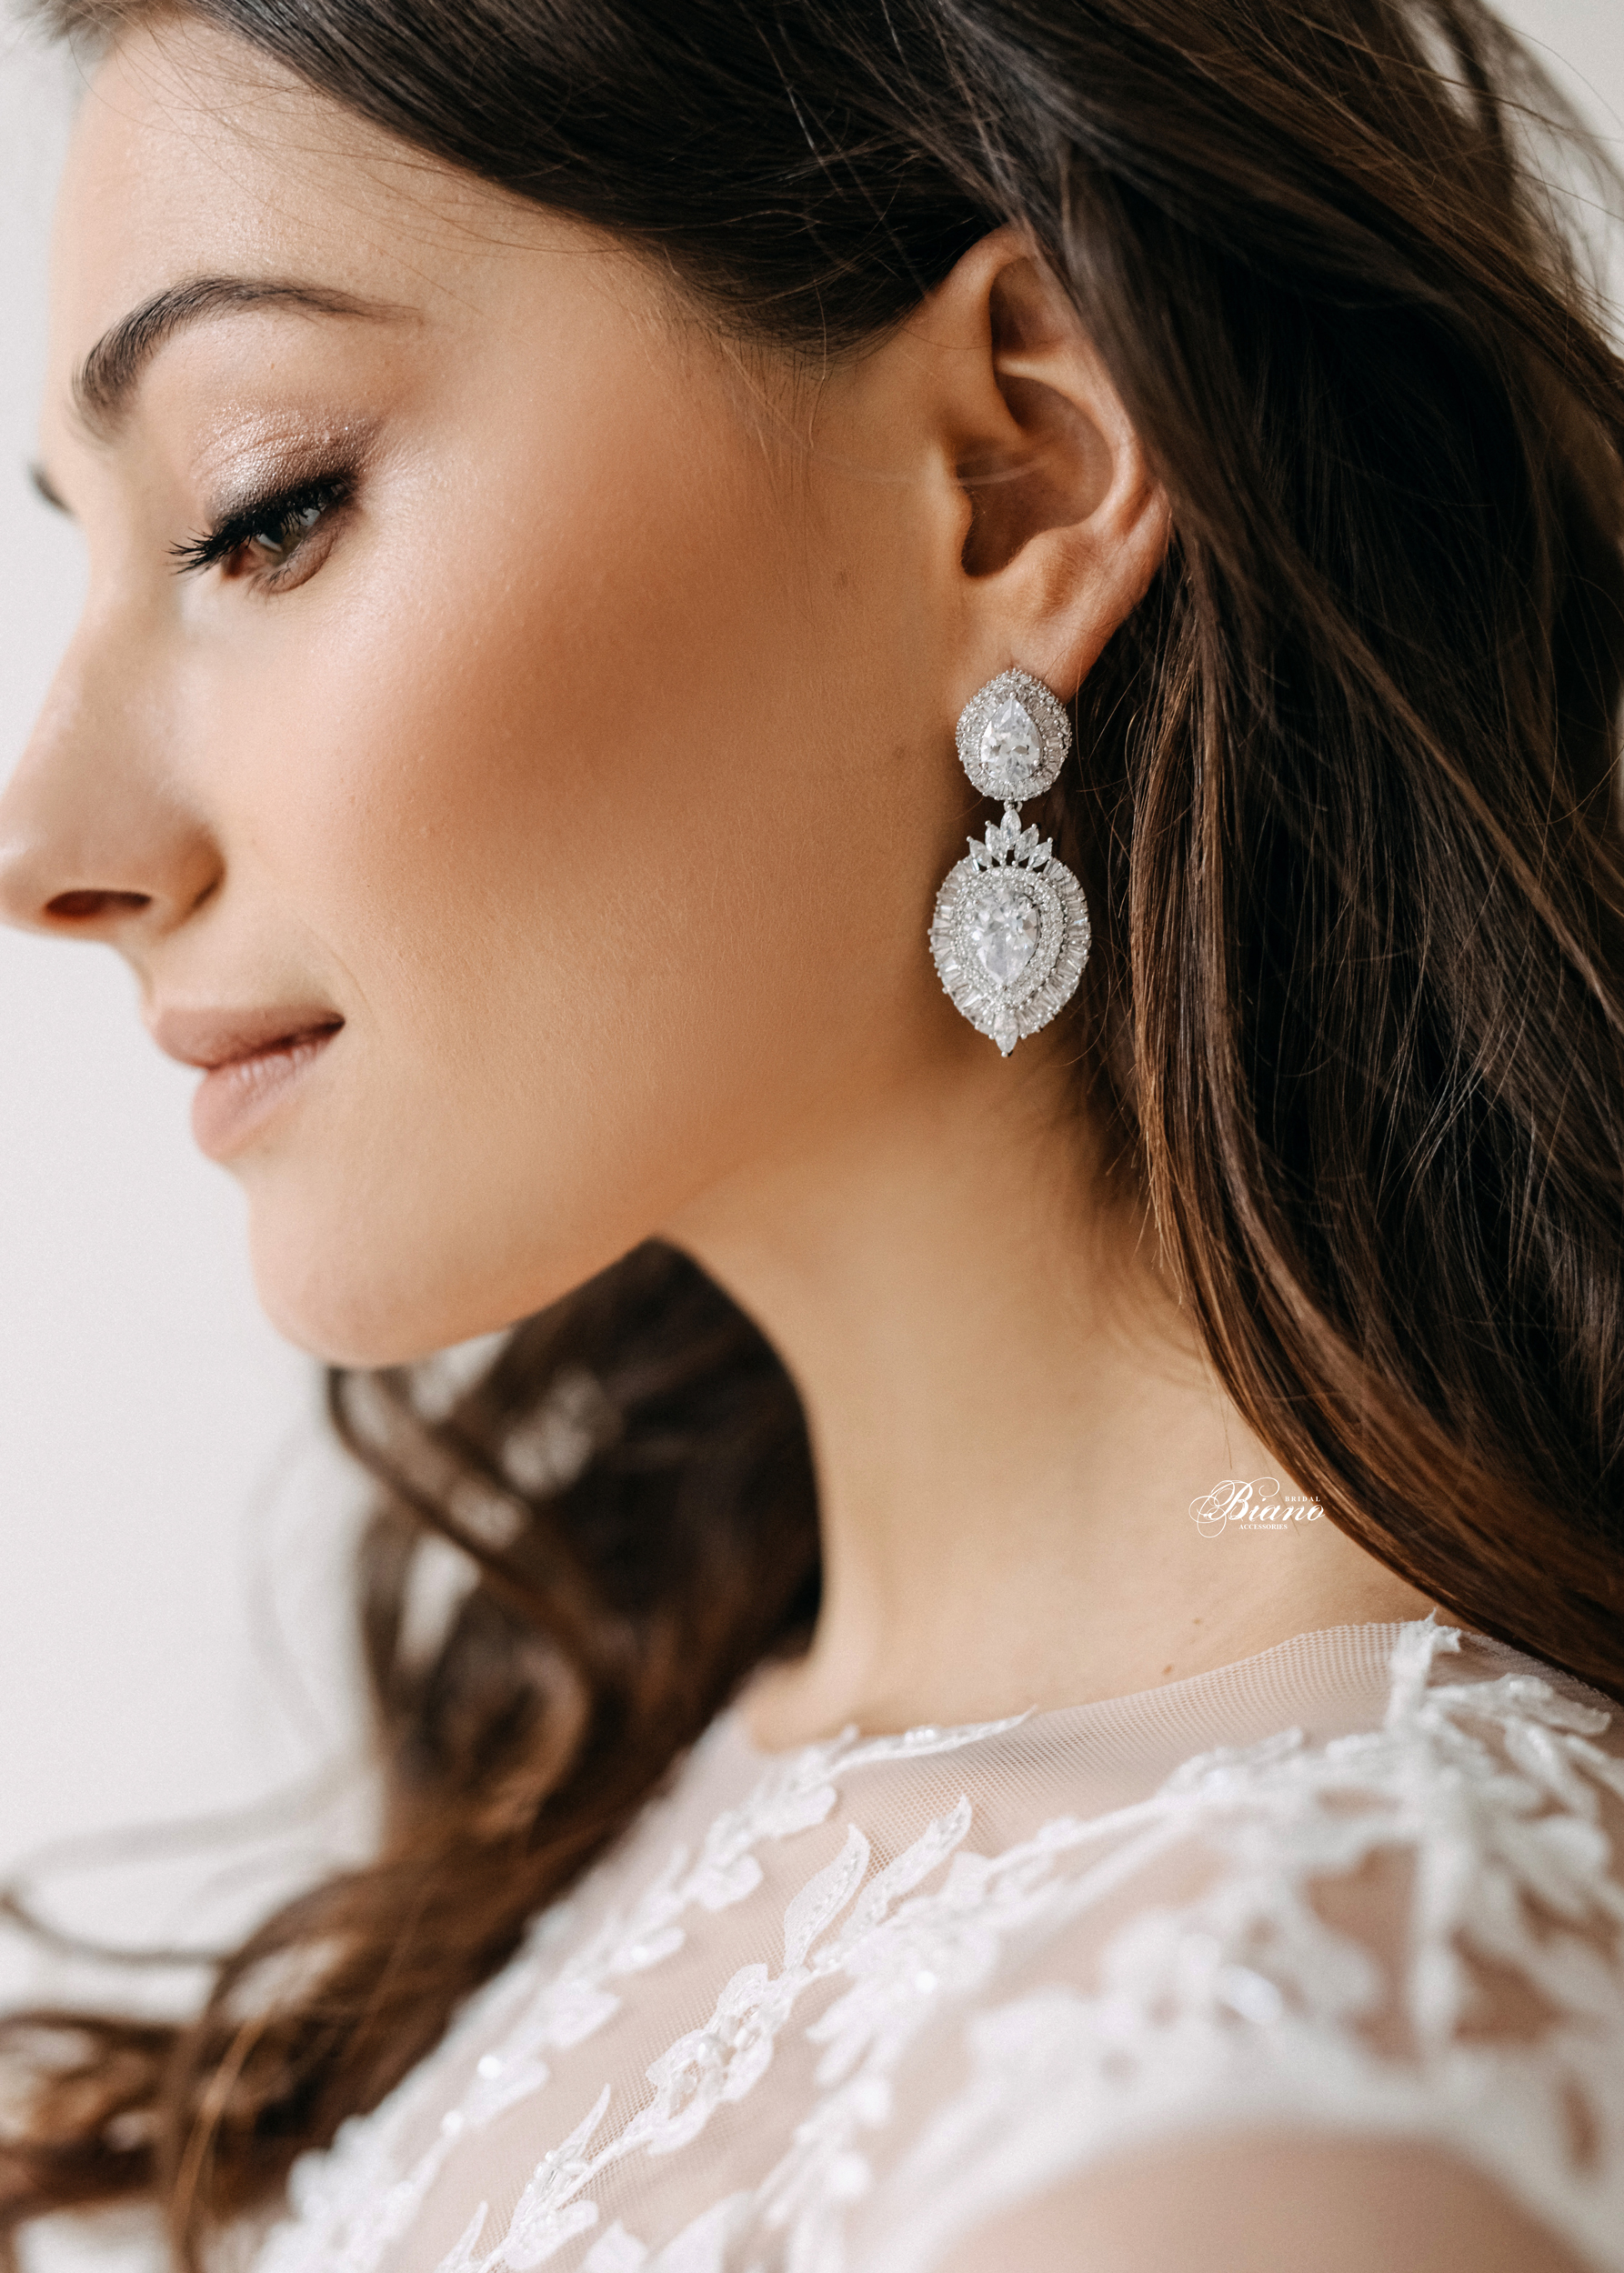 Find your perfect Bridal Drop Earrings - Handmade in SwitzerlandUnique DesignPossibility to Rush OrdersFree Shipping WorldwideCustomisable OrdersFast response on your questions